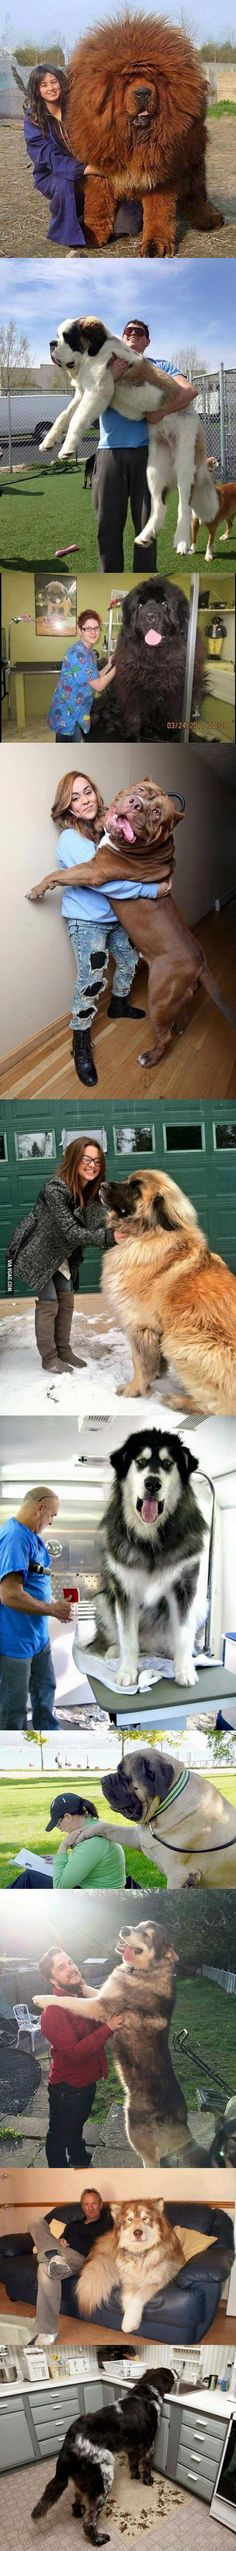 These are the biggest dogs in the world - Tiere - Perros Big Animals, Cute Funny Animals, Funny Animal Pictures, Cute Baby Animals, Dog Pictures, Funny Dogs, Animals And Pets, Funny Fails, Huge Dogs